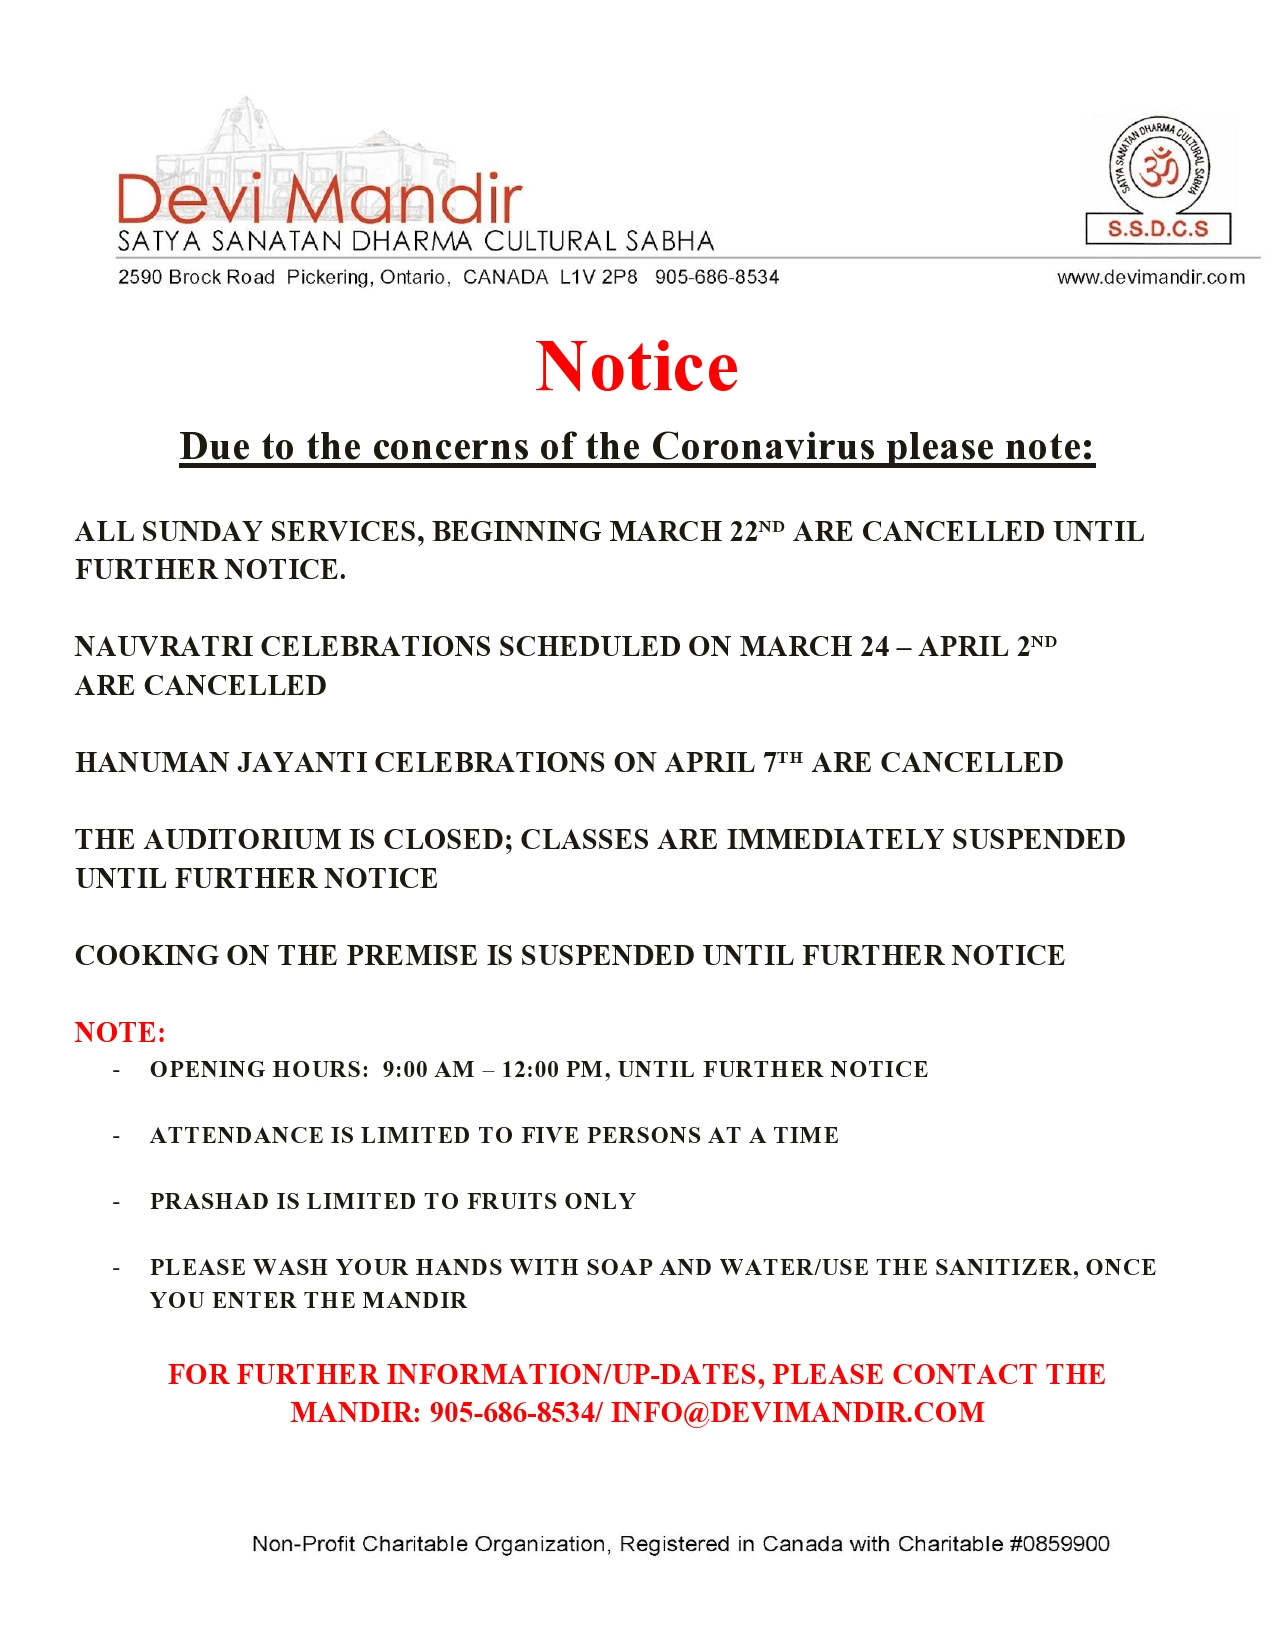 Due to the concerns of the Coronavirus